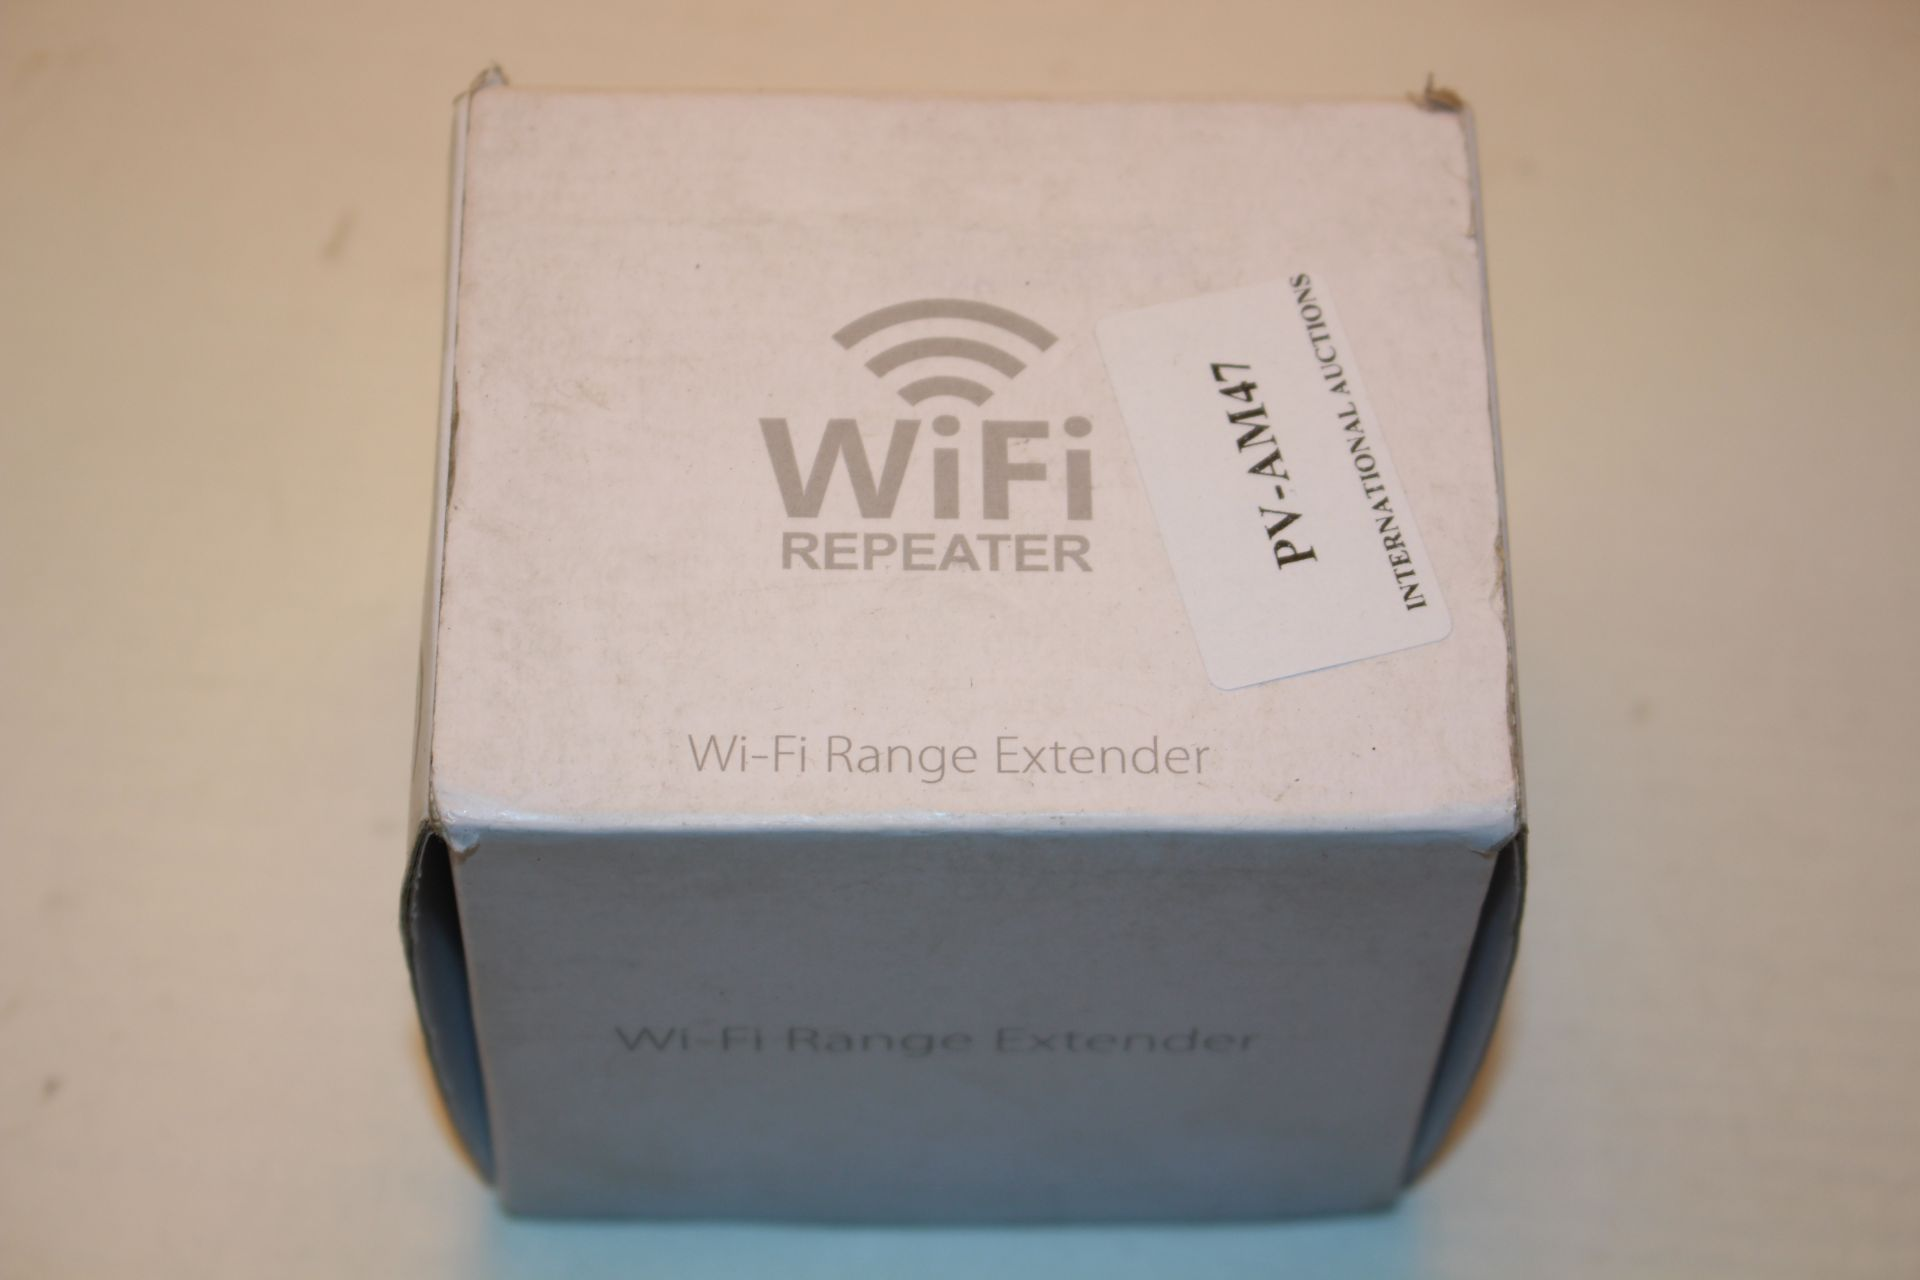 BOXED WIFI REPEATER WIFI RANGE EXTENDER Condition ReportAppraisal Available on Request- All Items